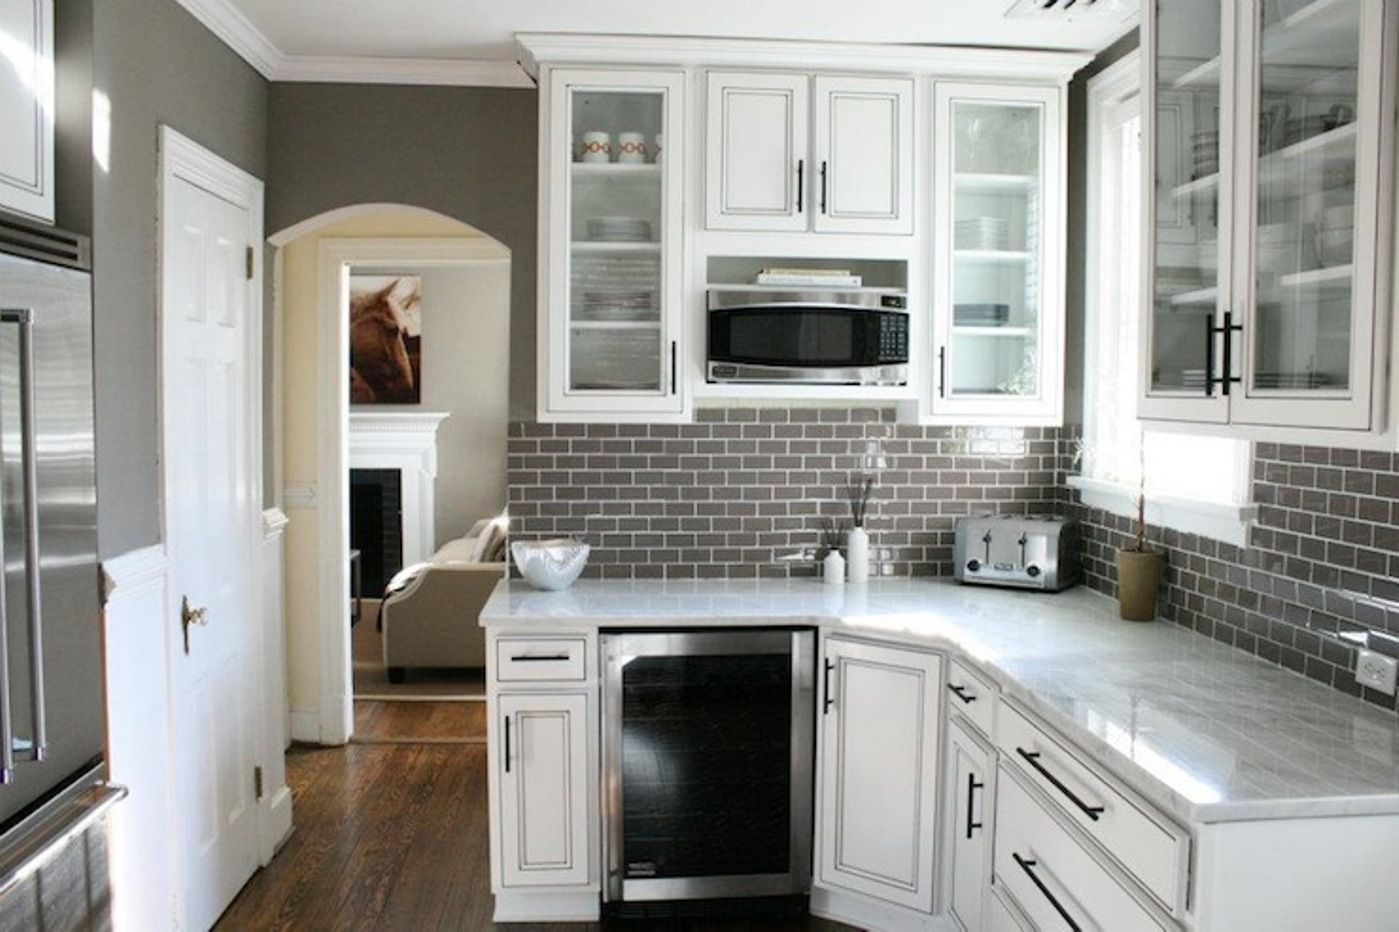 chocolate glass subway tile kitchen backsplash subway tiles and kitchens. Black Bedroom Furniture Sets. Home Design Ideas